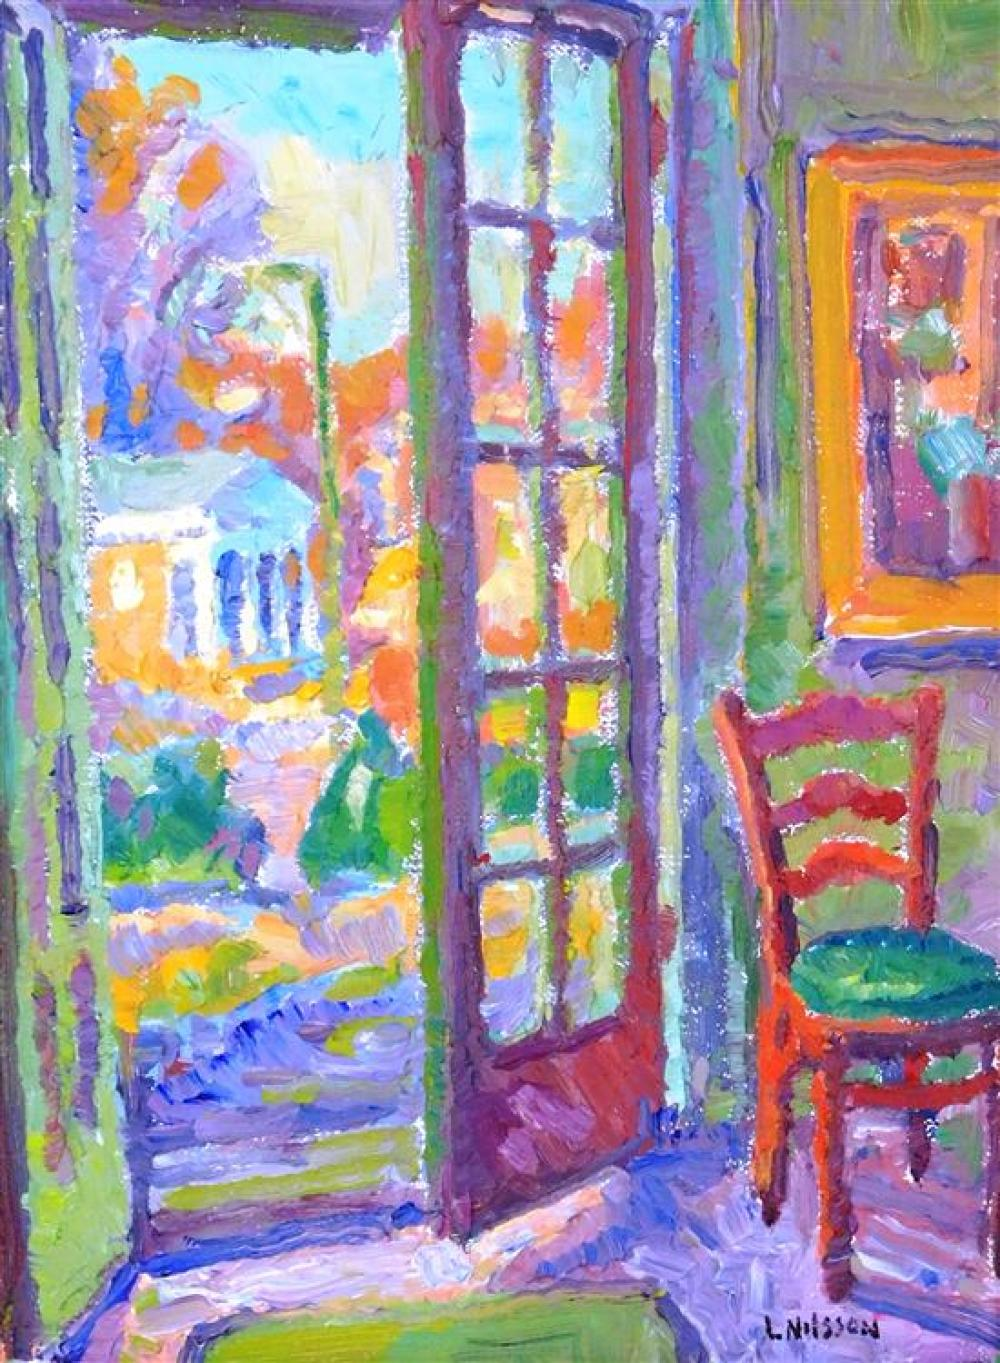 "Leif Nilsson (Connecticut, b. 1962), oil on canvas, ""Through the Doors with Red Chair"", stylized and colorful interior scene, red ch..."